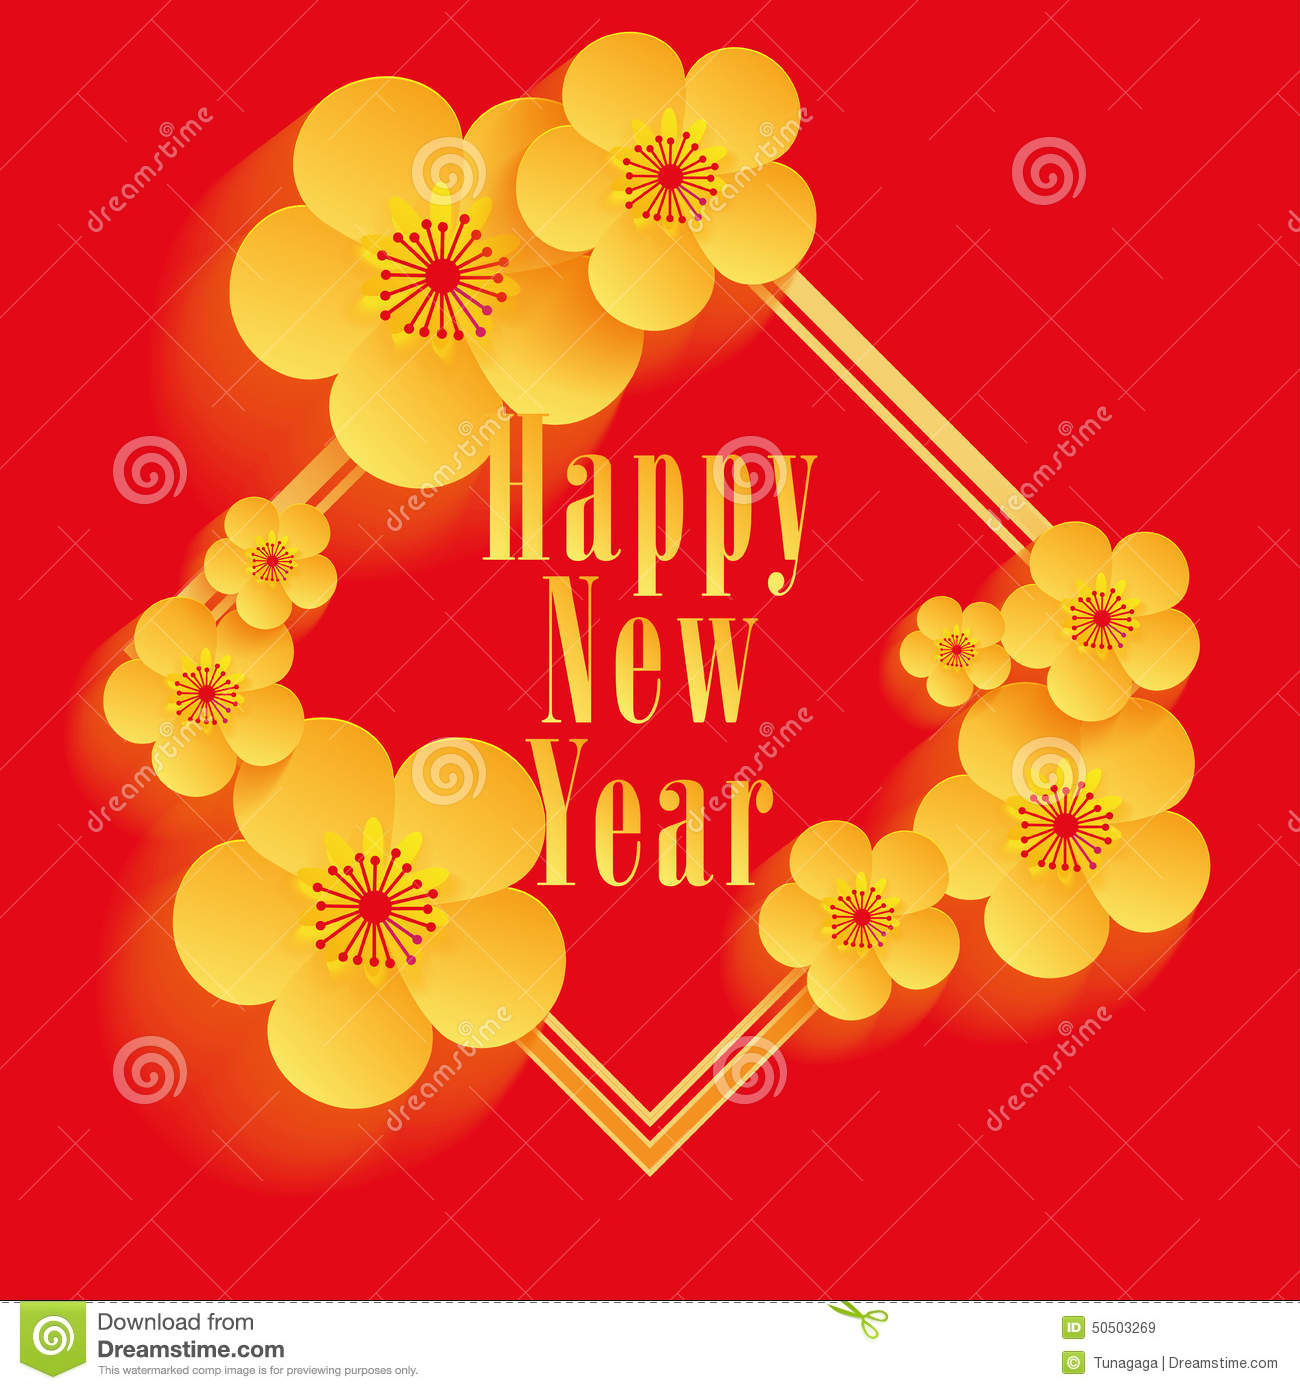 download chinese new year greeting card design stock vector illustration of precious greeting